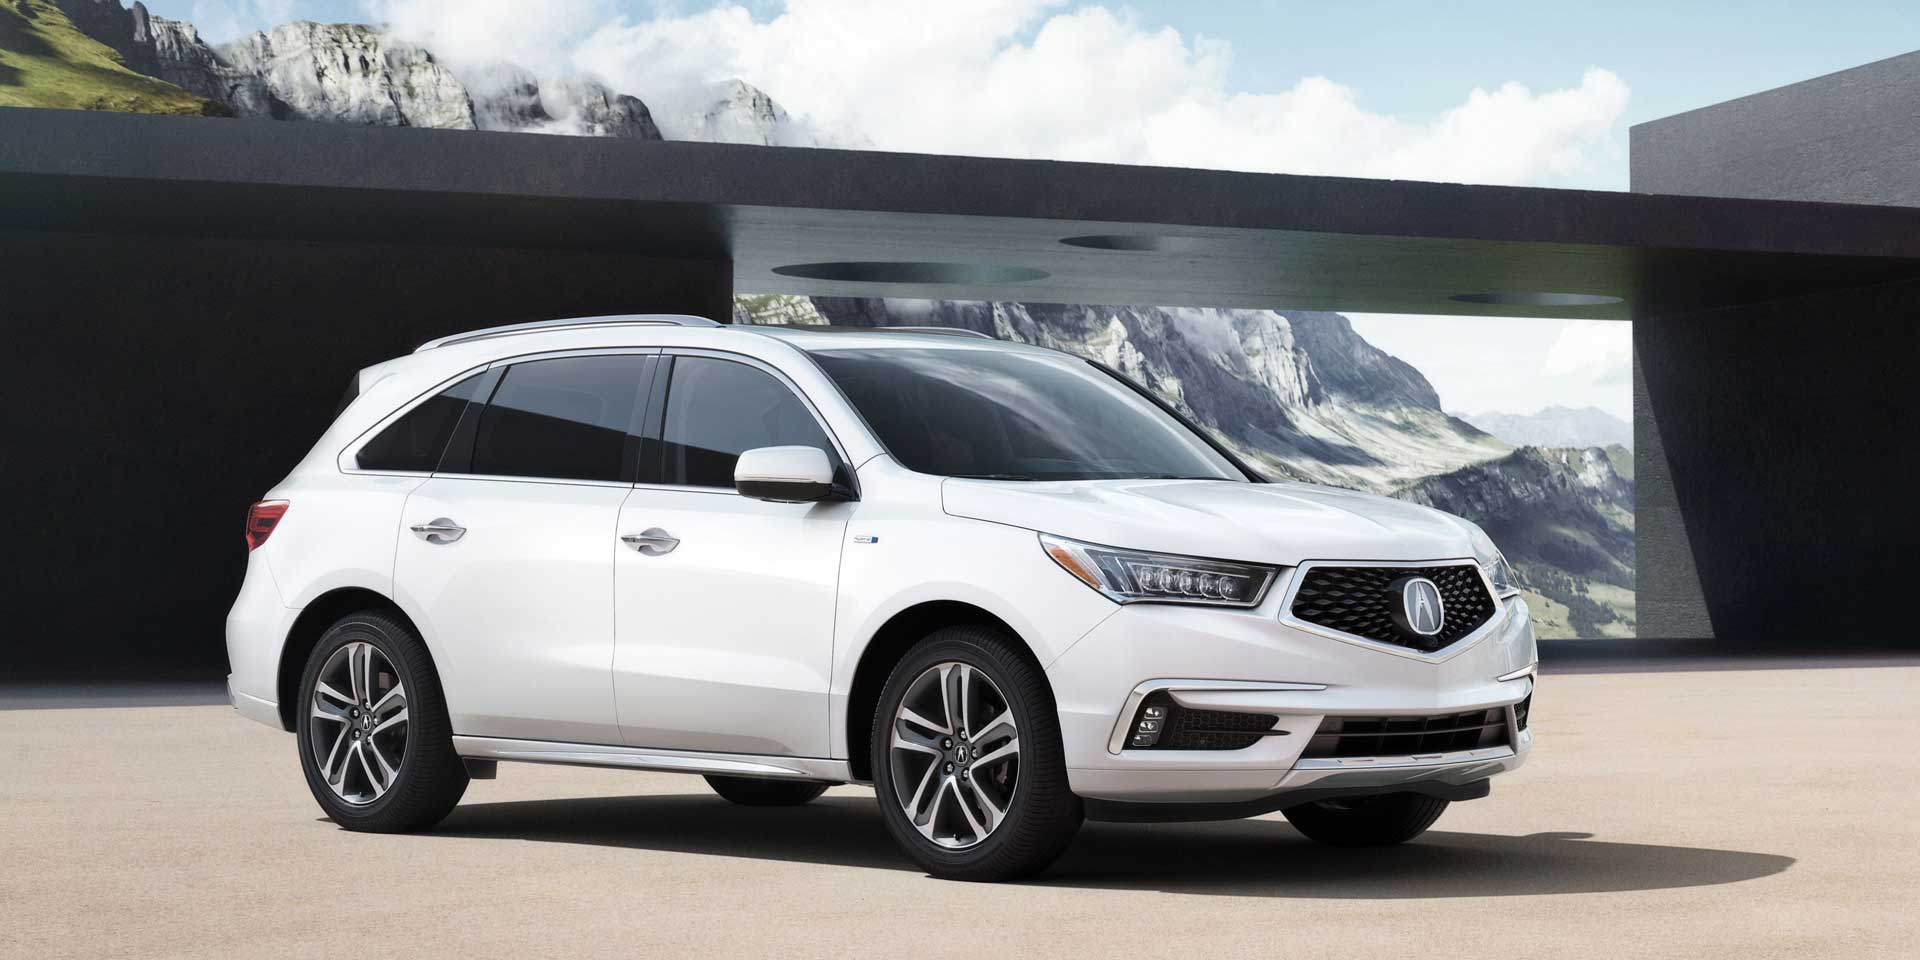 Used Cars For Sale New Cars For Sale Car Dealers Cars Chicago - Acura mdx used car for sale